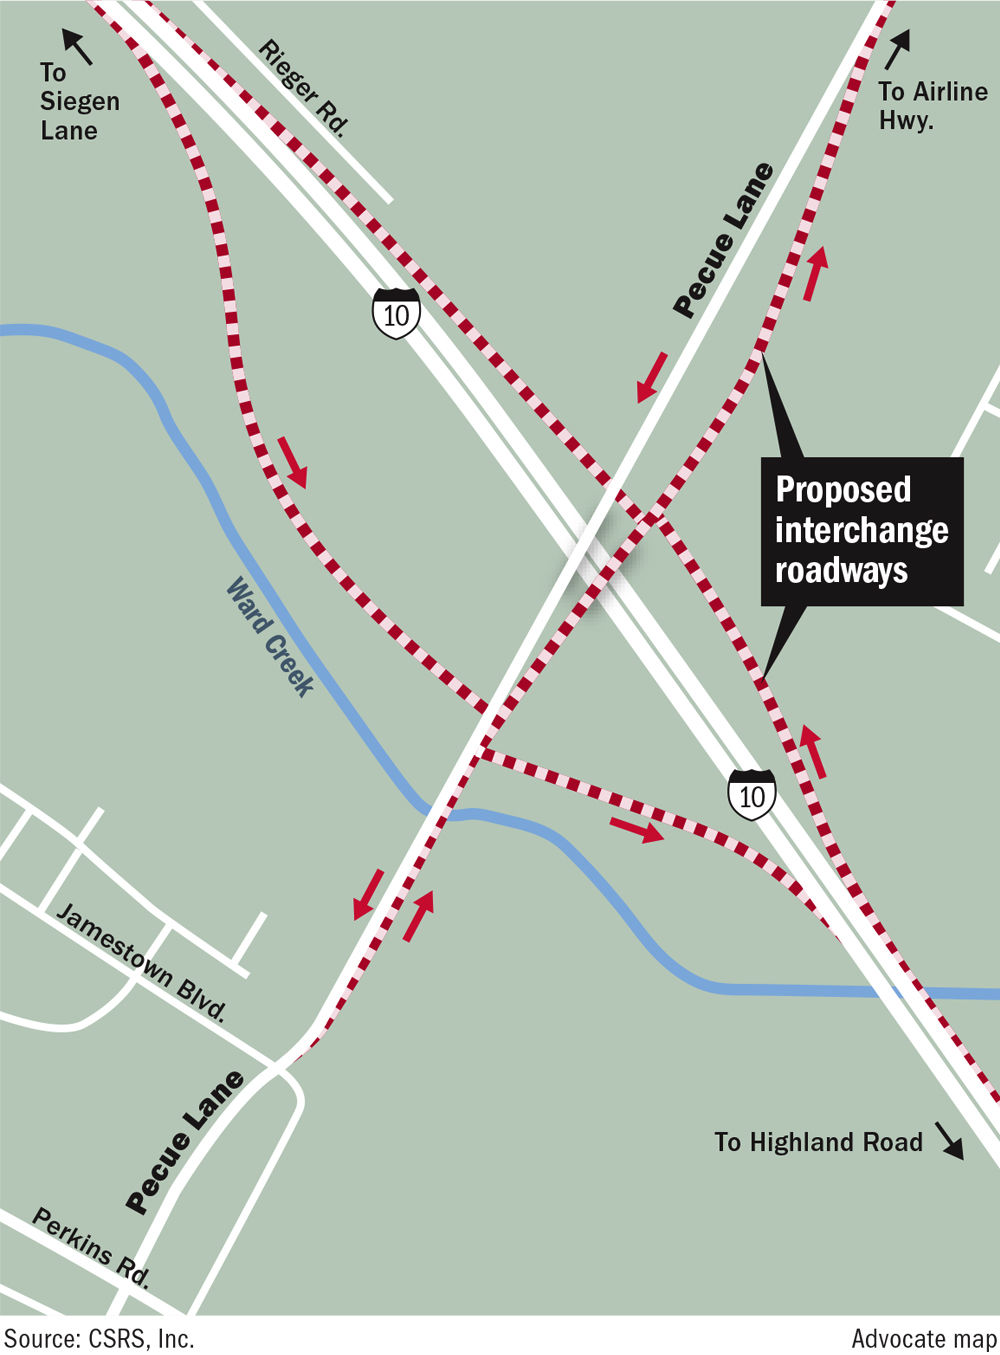 Governor, mayor launch new phase of Pecue Lane/I-10 overhaul ... on interstate 8 map, interstate 80 map, interstate 81 map, interstate 20 map, i-10 map, interstate 421 map, interstate 27 map, interstate 75 map, highway 82 map, texas map, interstate 422 map, interstate 70 map, i-70 colorado road map, interstate 25 map, interstate 5 map, interstate 4 map, lincoln way map, interstate i-10,